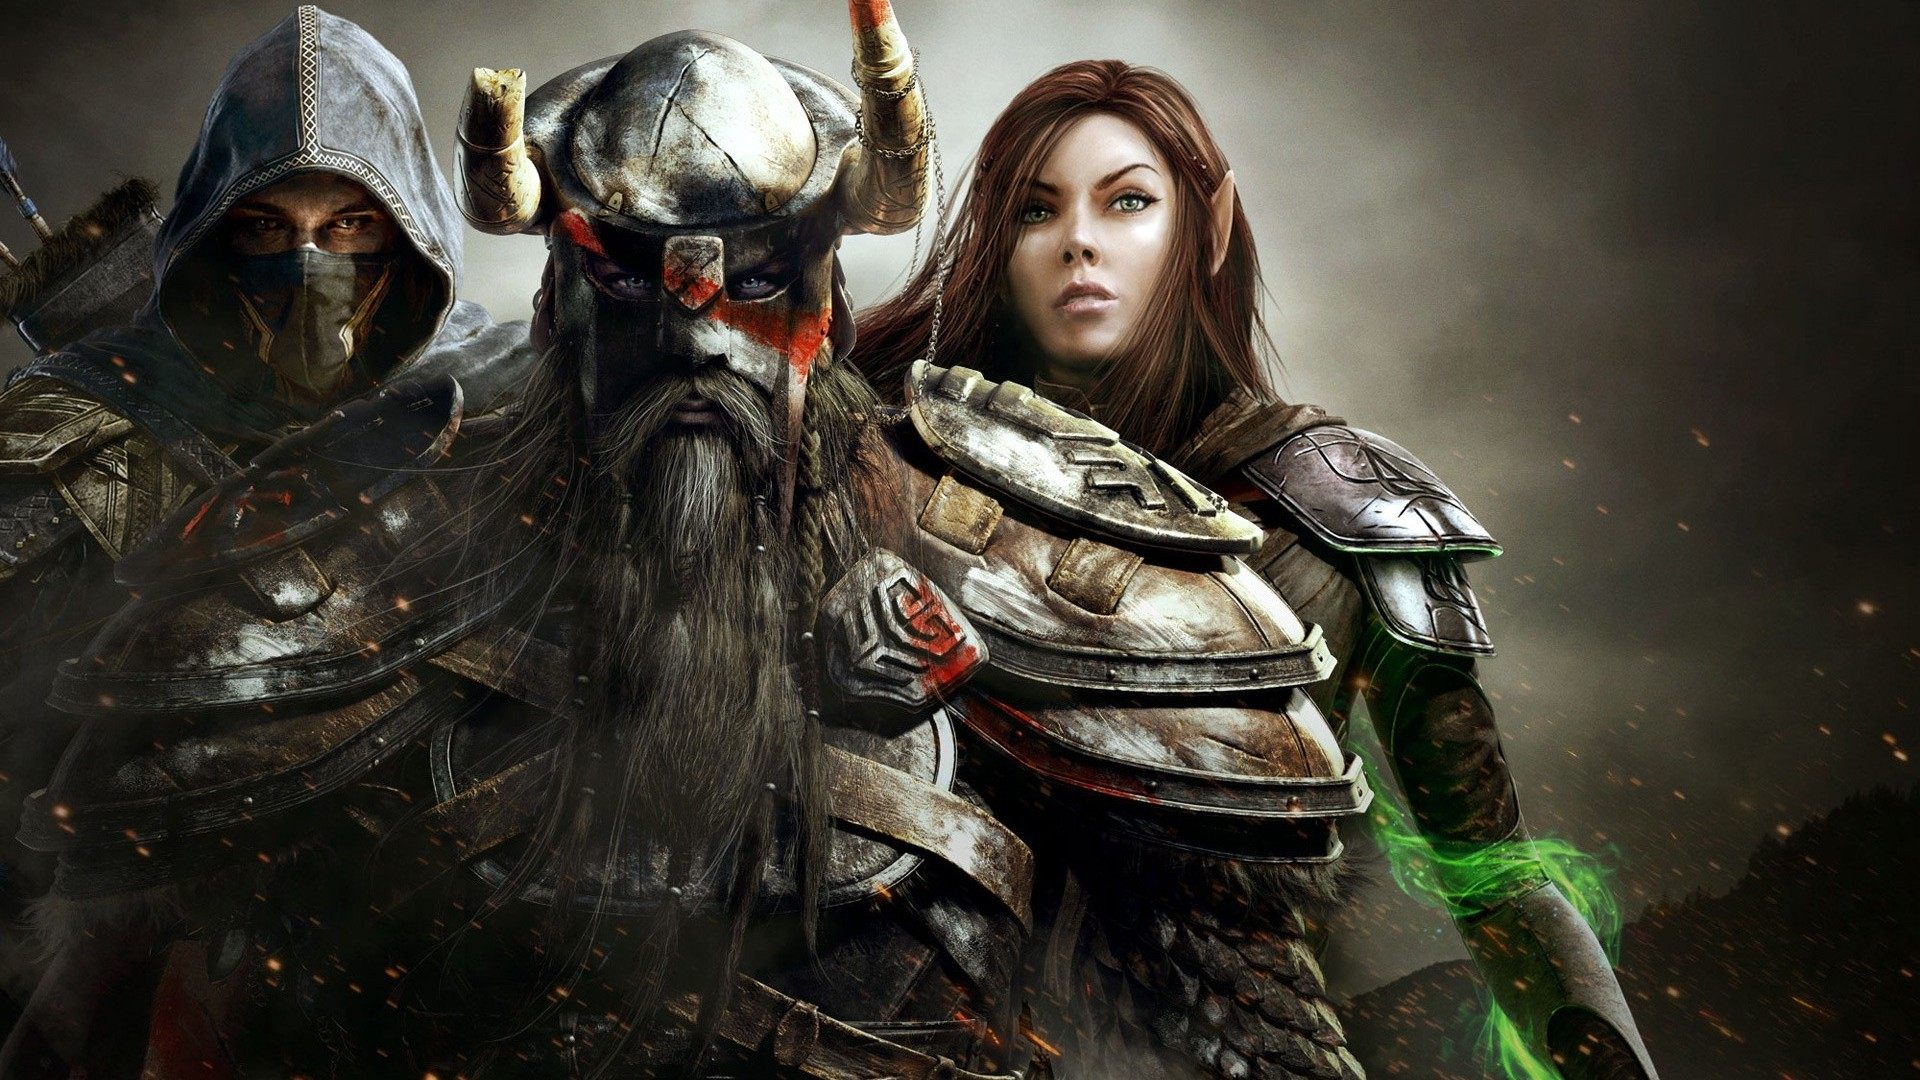 the-elder-scrolls-online-game-hd-wallpaper-1920x1080-6175